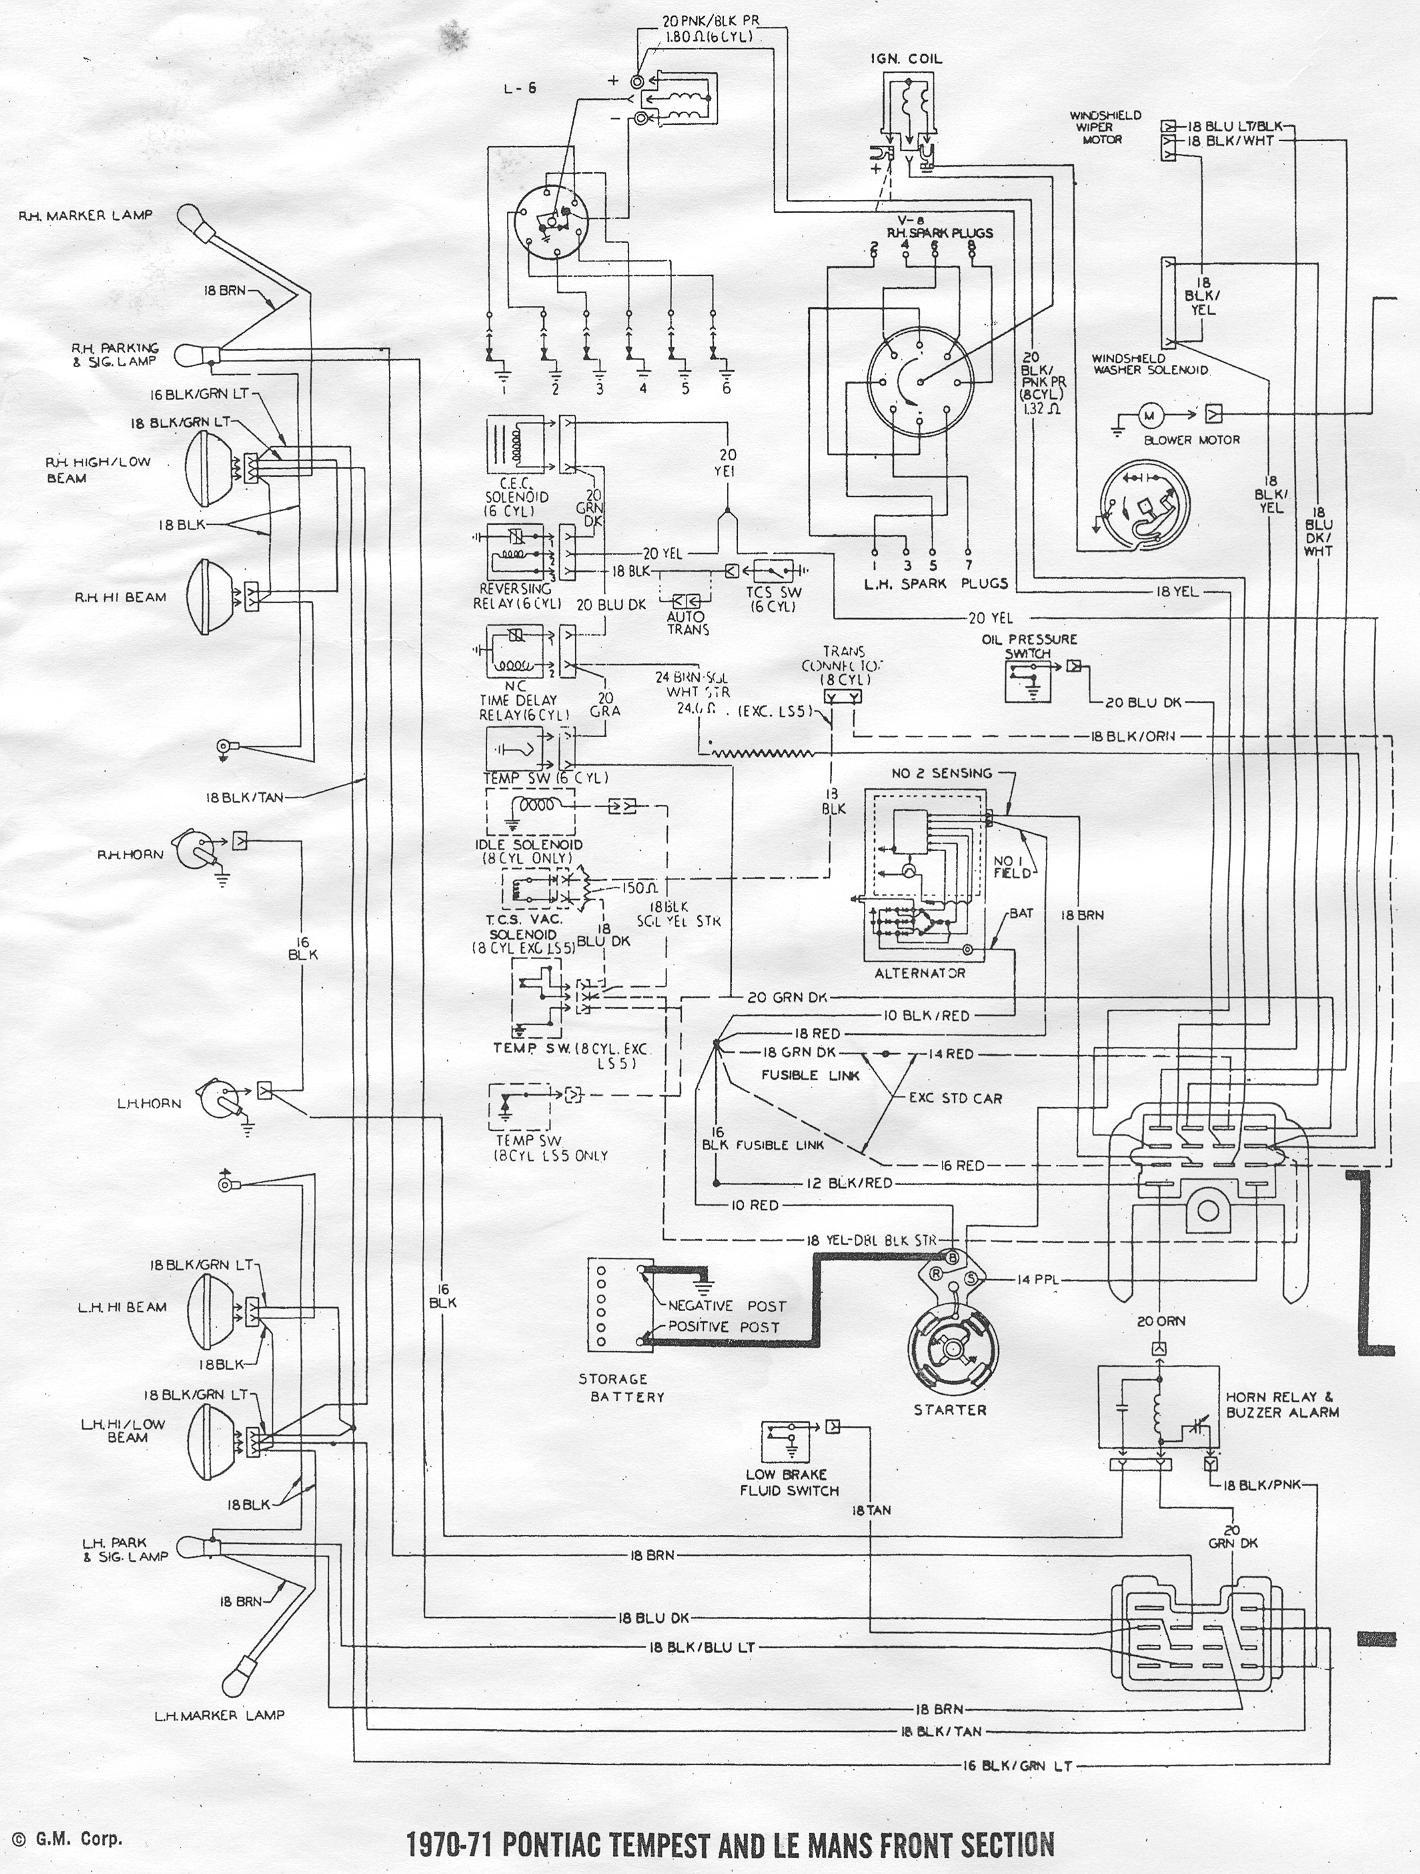 Outstanding 1970 Jeepster Commando Wiring Diagram Photo - Electrical on series and parallel circuits diagrams, engine diagrams, switch diagrams, gmc fuse box diagrams, lighting diagrams, hvac diagrams, troubleshooting diagrams, motor diagrams, honda motorcycle repair diagrams, pinout diagrams, smart car diagrams, transformer diagrams, internet of things diagrams, battery diagrams, friendship bracelet diagrams, led circuit diagrams, electronic circuit diagrams, snatch block diagrams, electrical diagrams, sincgars radio configurations diagrams,